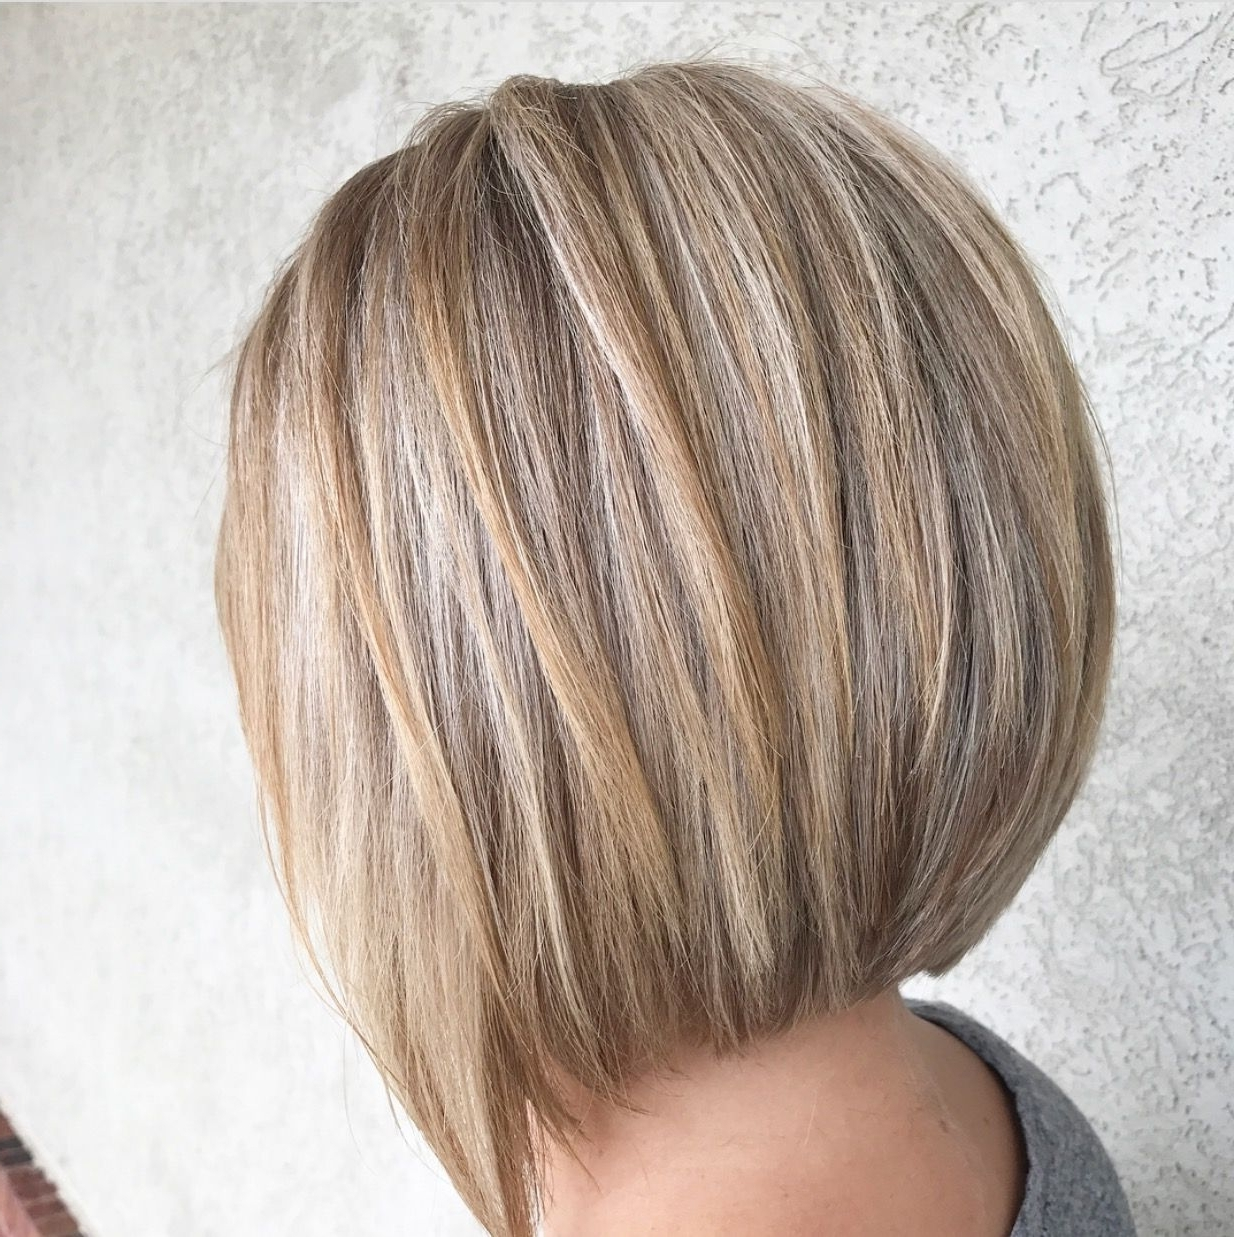 Hair With Well Known Voluminous Stacked Cut Blonde Hairstyles (View 8 of 20)